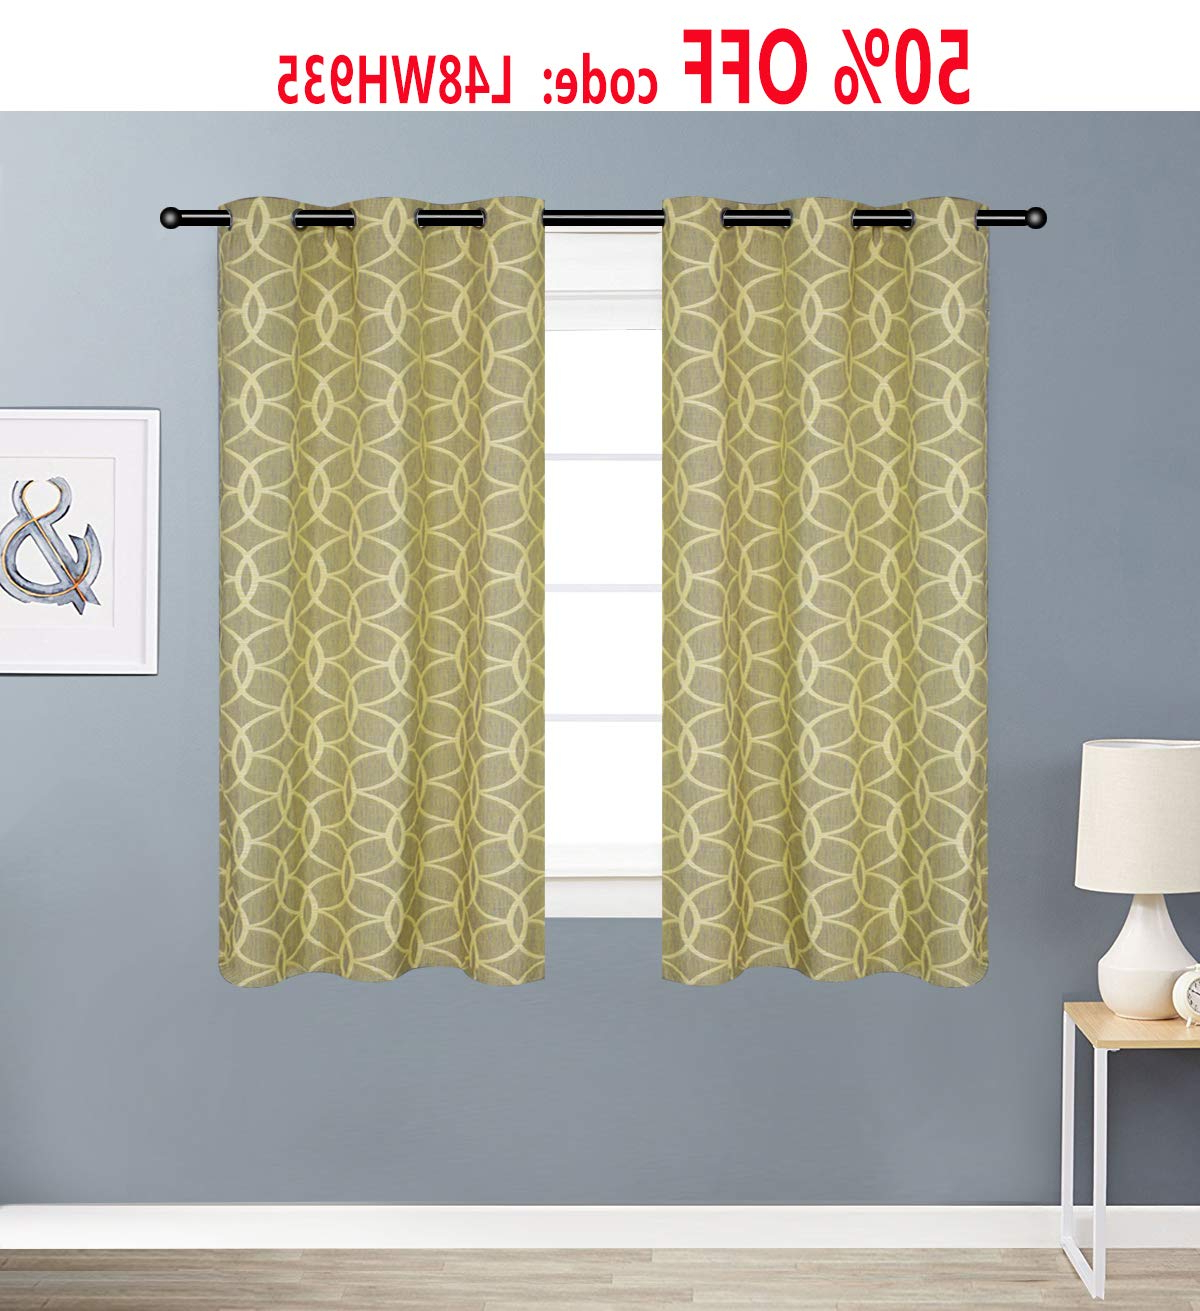 Alice Brown Curtains/drapes Linen Textured Curtains For Bedroom, Patio Curtain, Flax Linen Blend Textured Circle Window Drapes Set For Living Room – 2 In Famous Modern Subtle Texture Solid Red Kitchen Curtains (View 20 of 20)